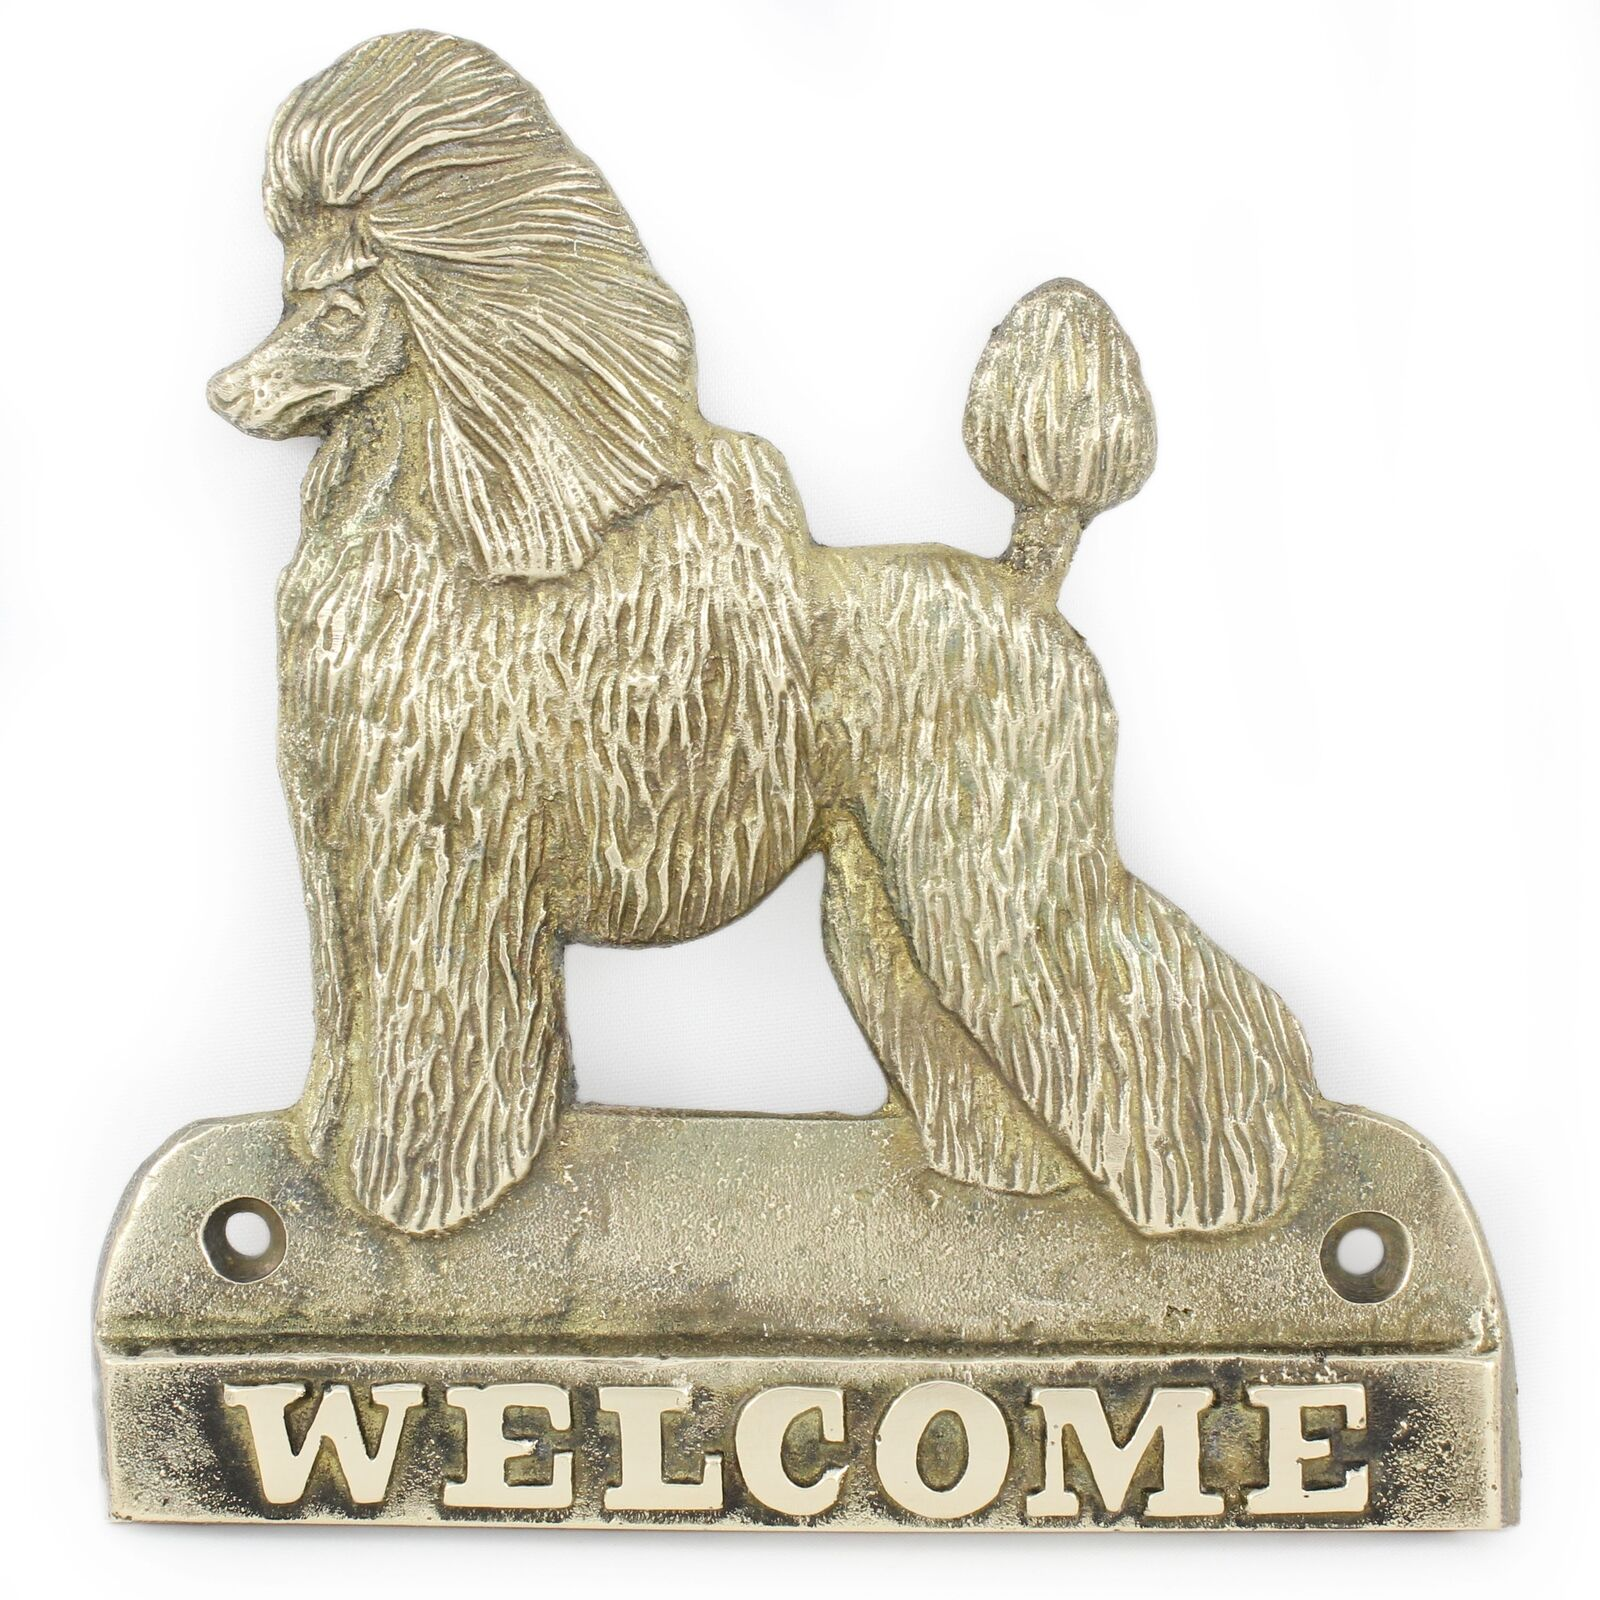 Poodle - brass tablet with image of a dog, Art Dog